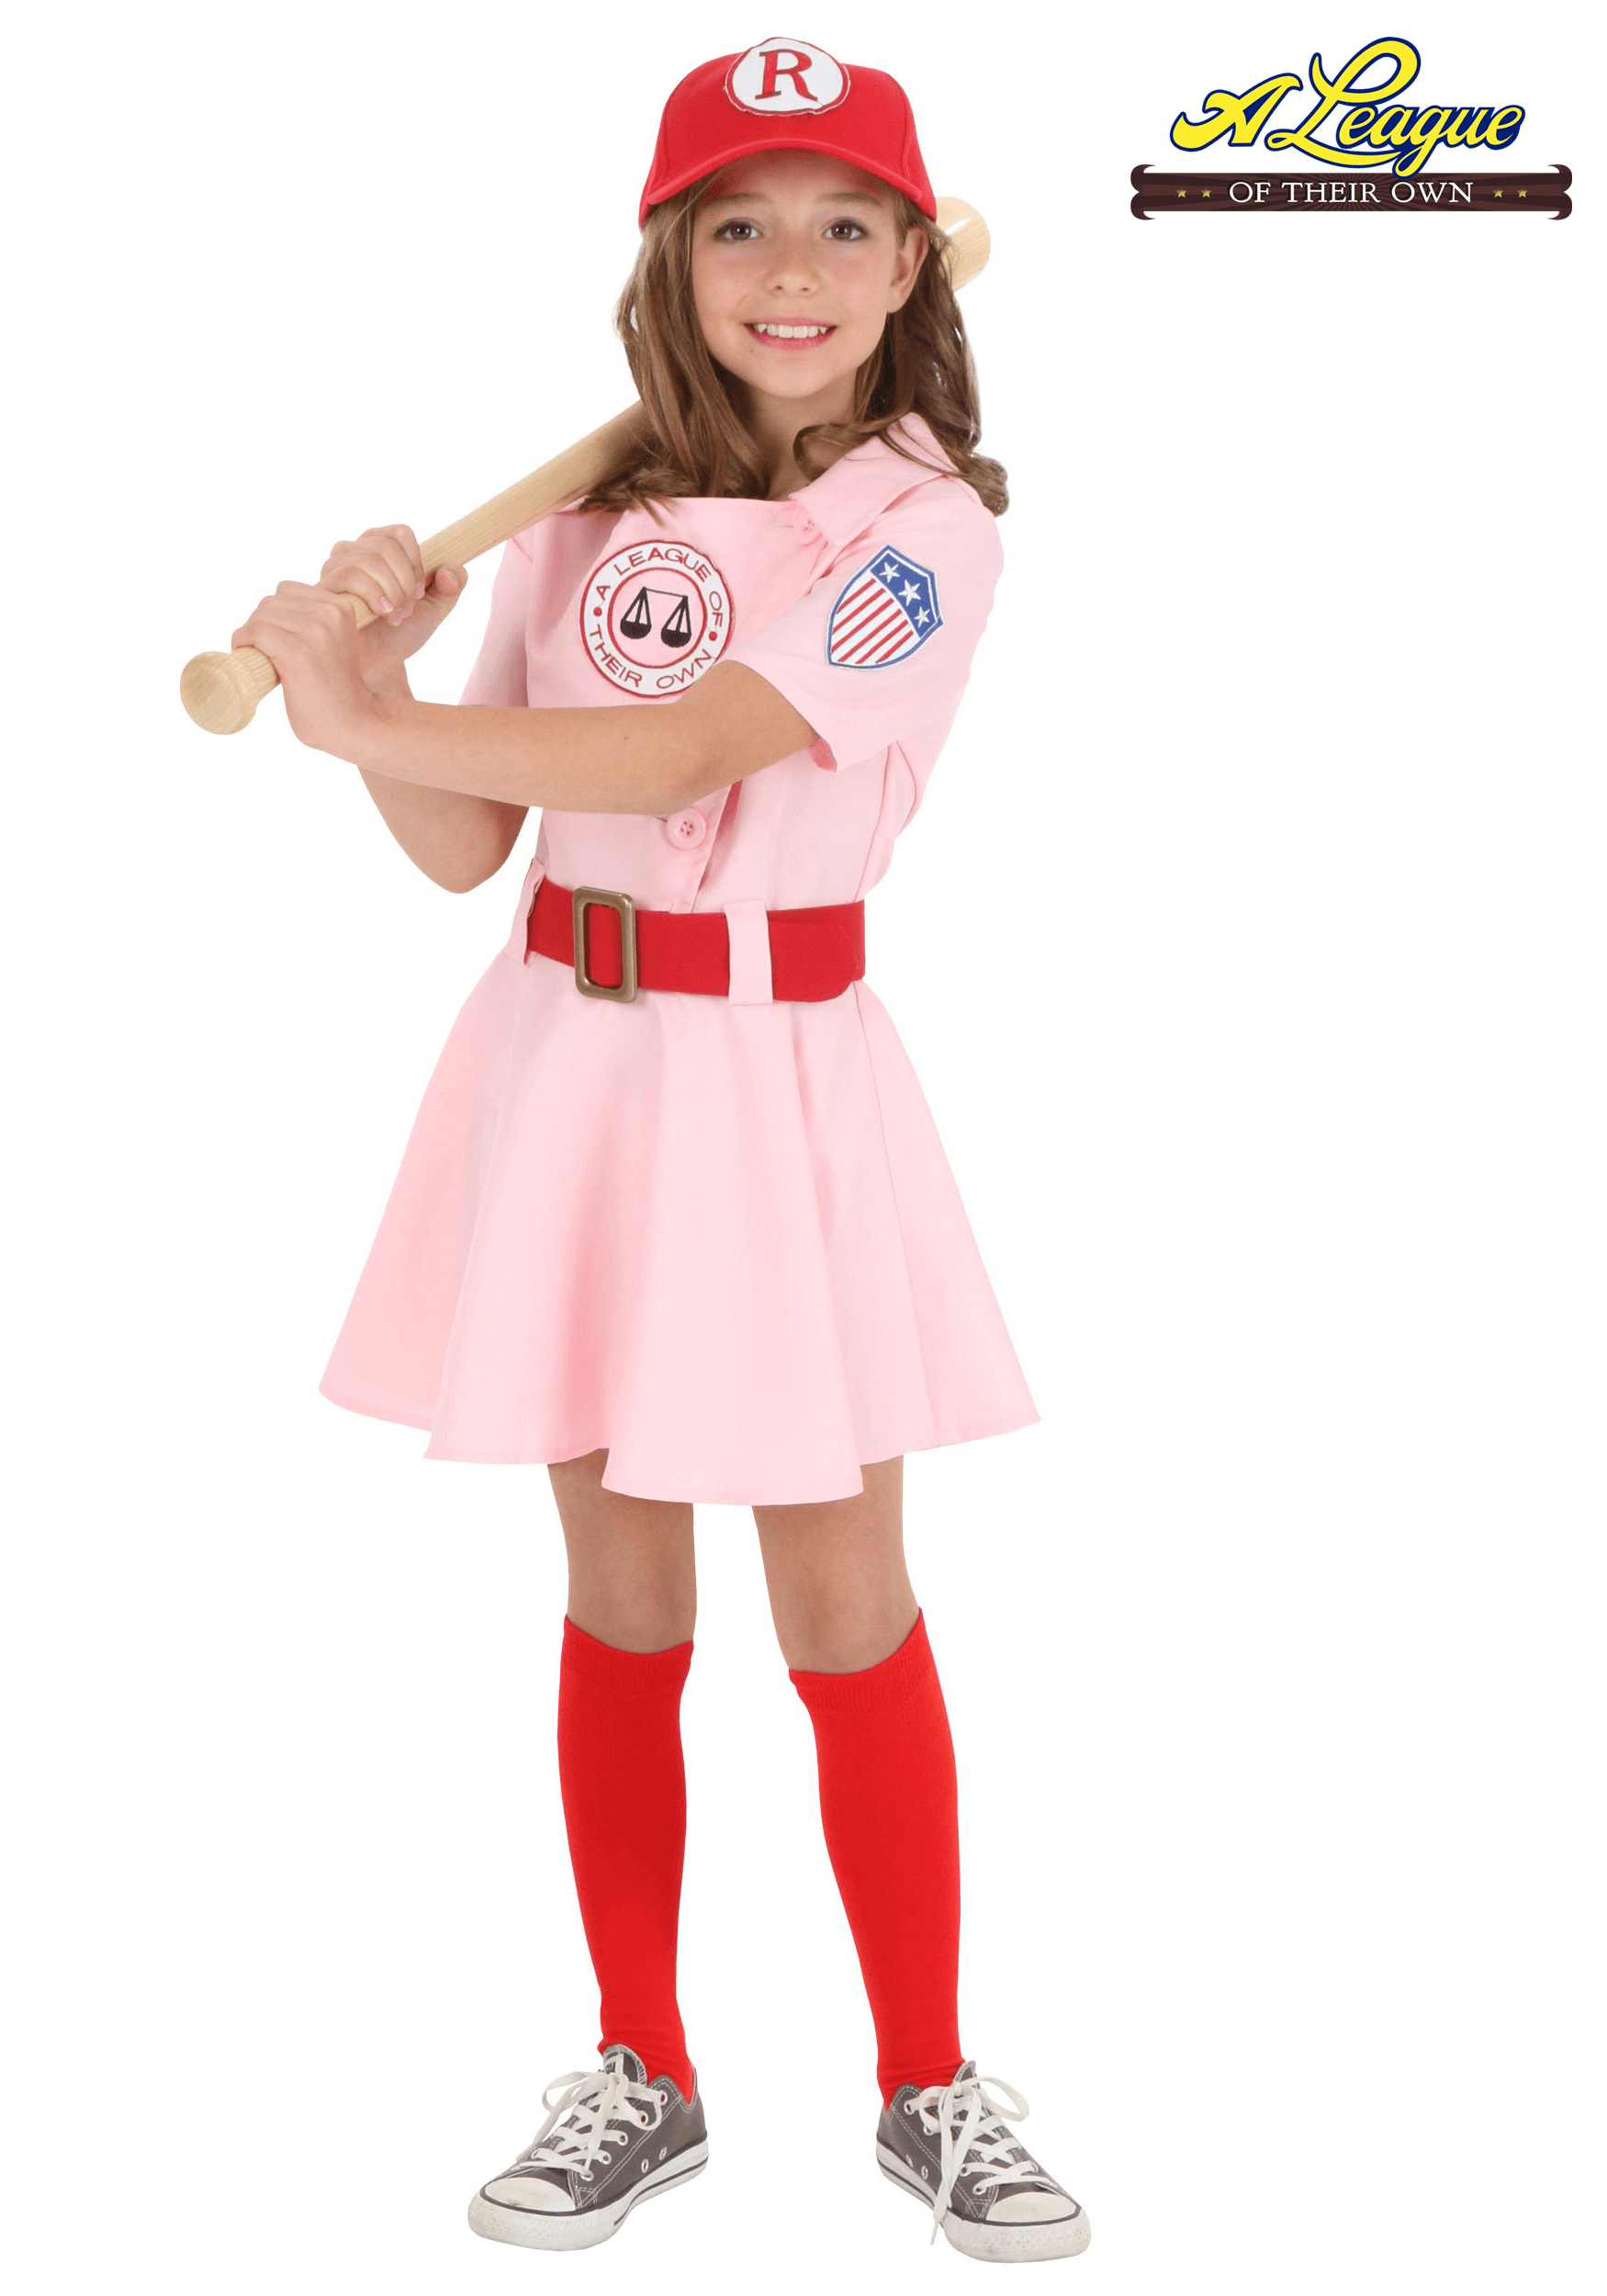 Child a league of their own dottie costume for Cool halloween costumes for kids girls